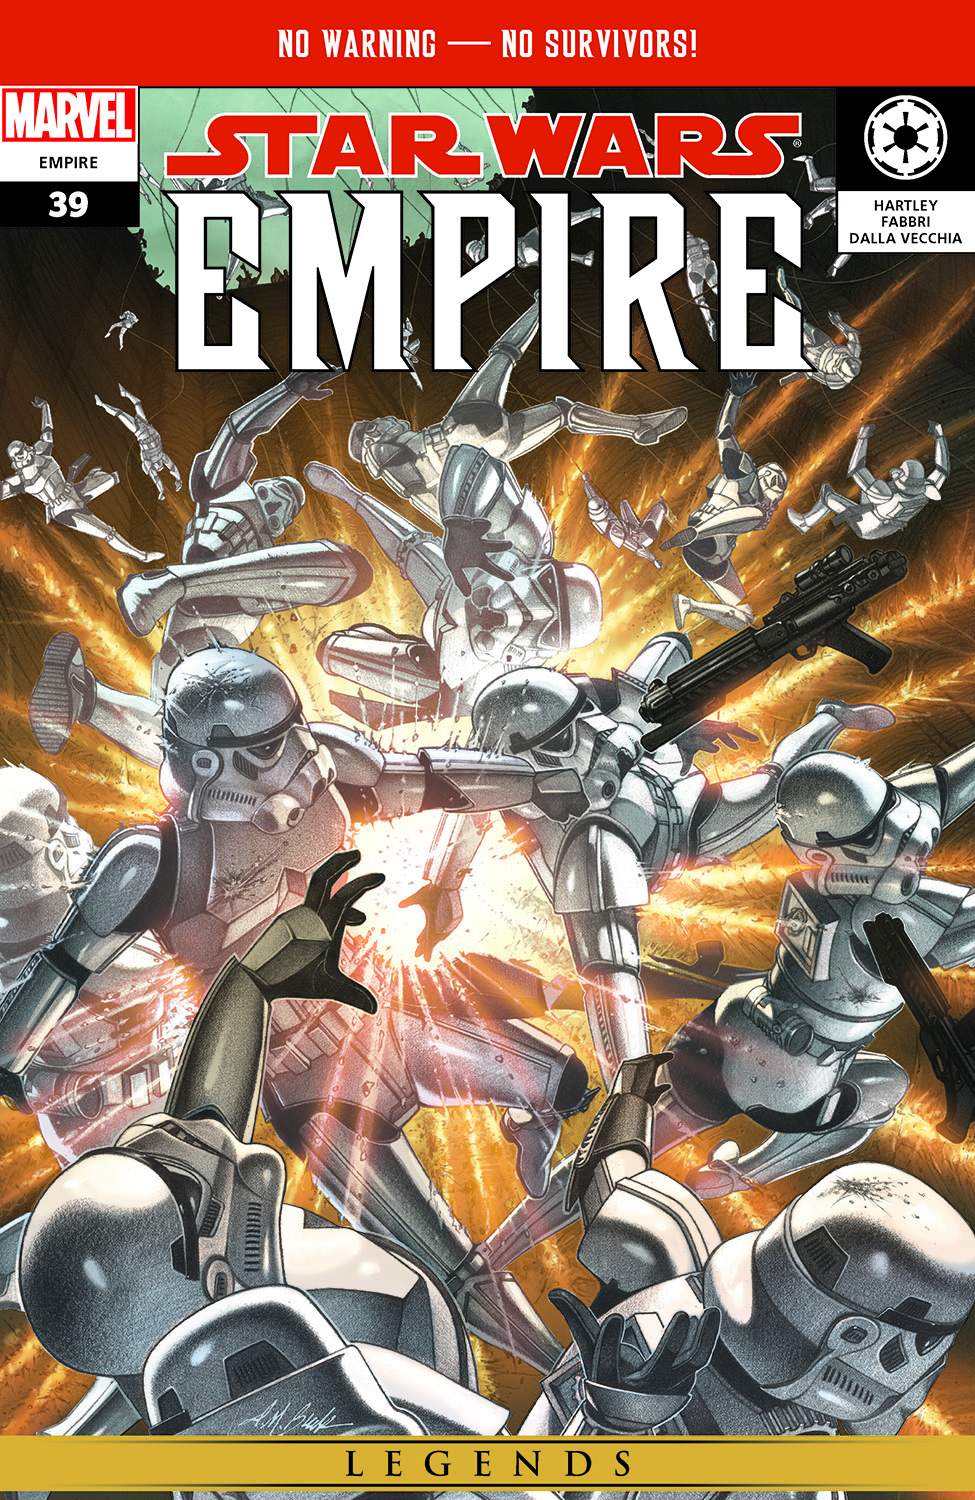 Star Wars: Empire (2002) #39